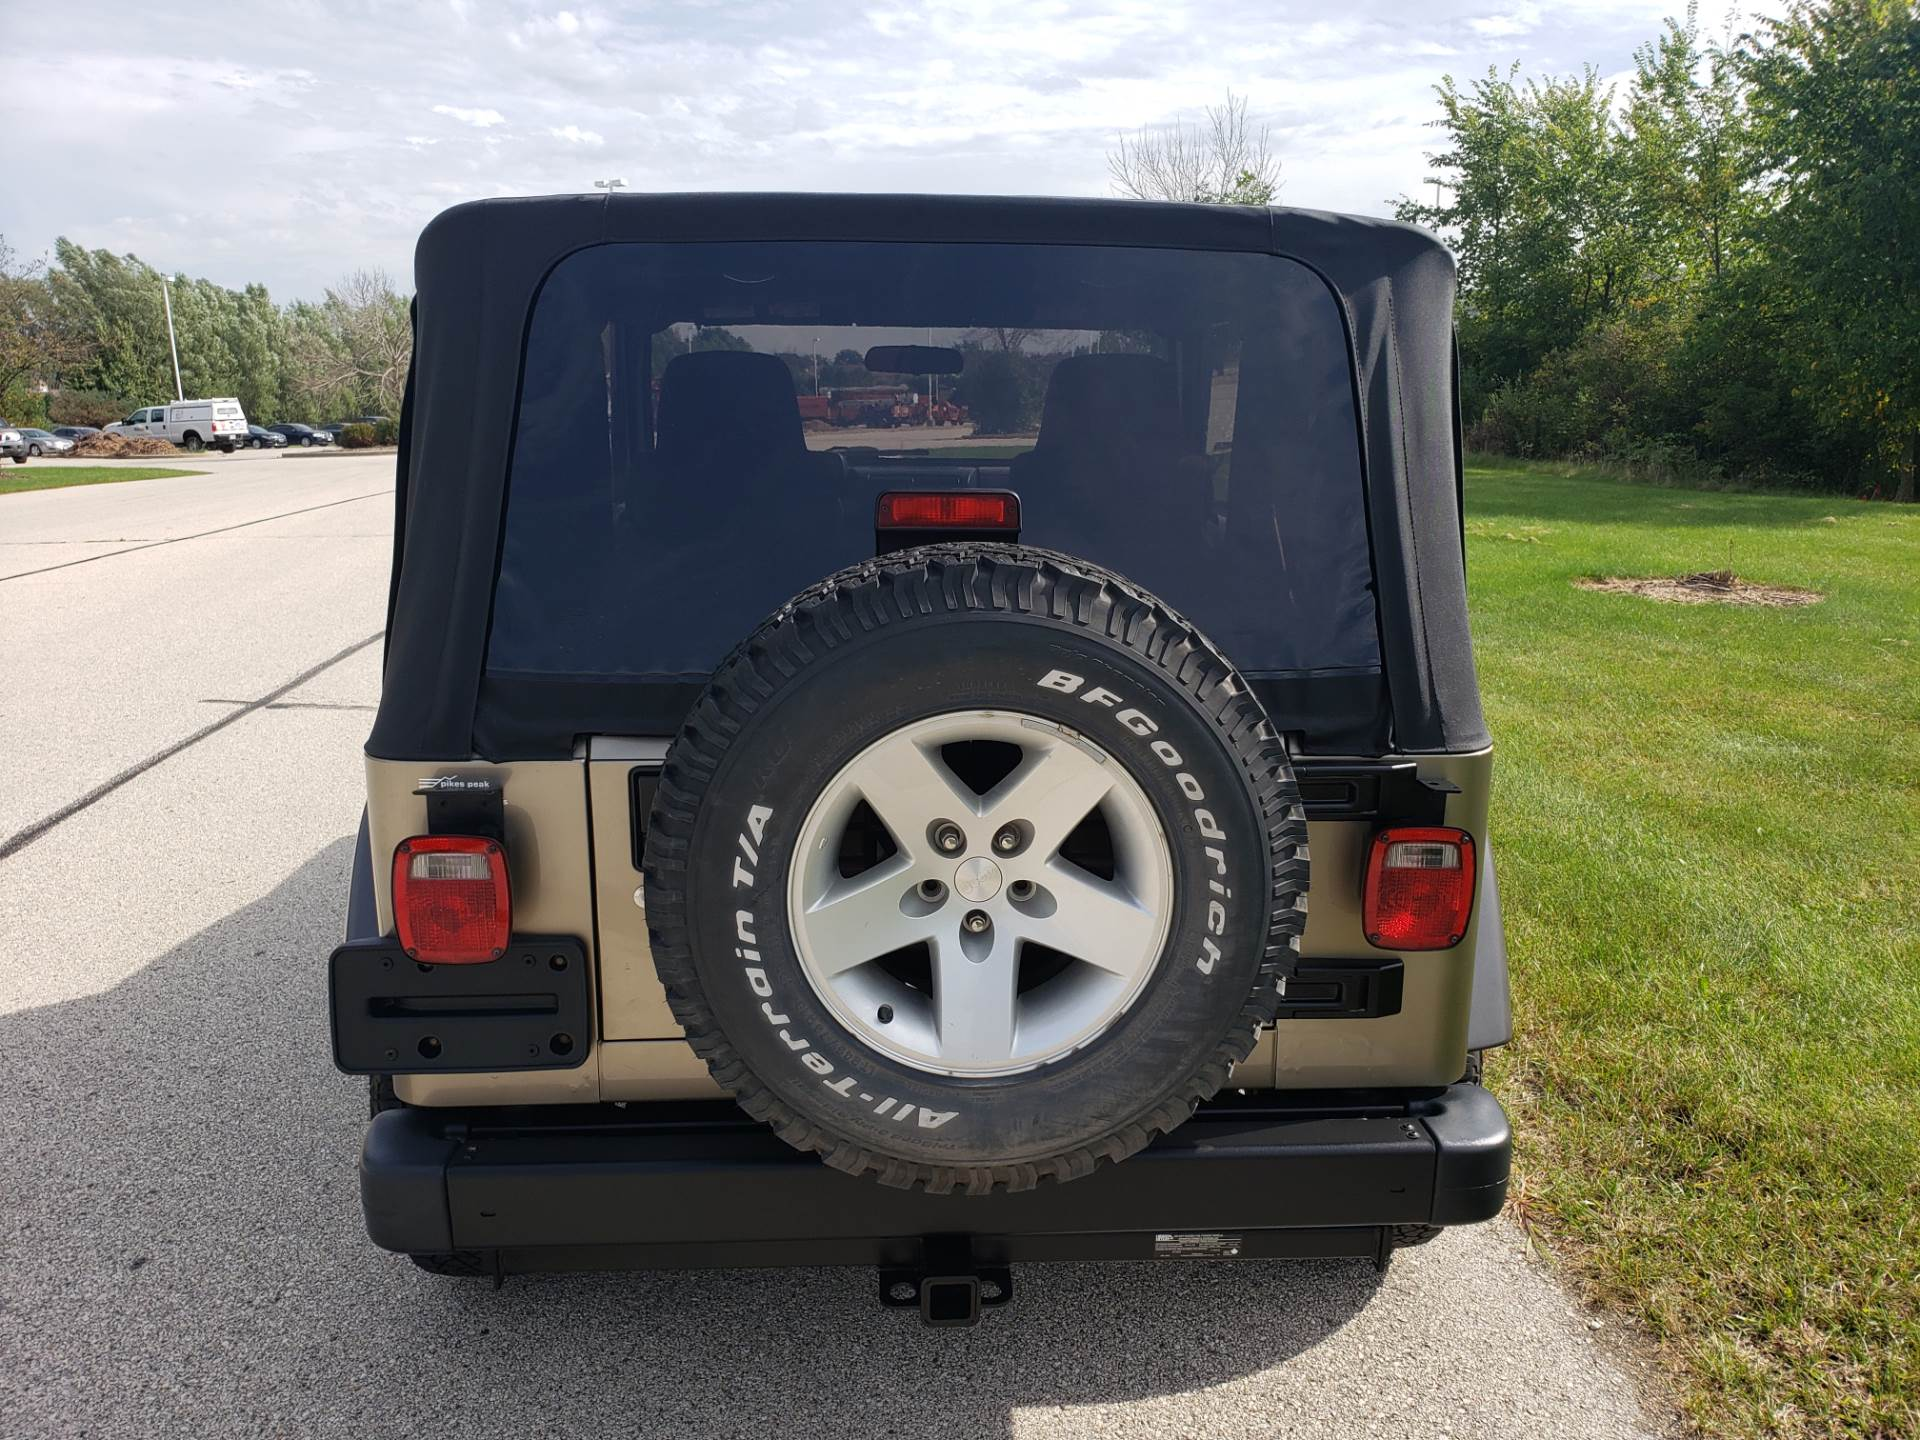 2005 Jeep Wrangler Rubicon 4WD 2dr SUV in Big Bend, Wisconsin - Photo 19